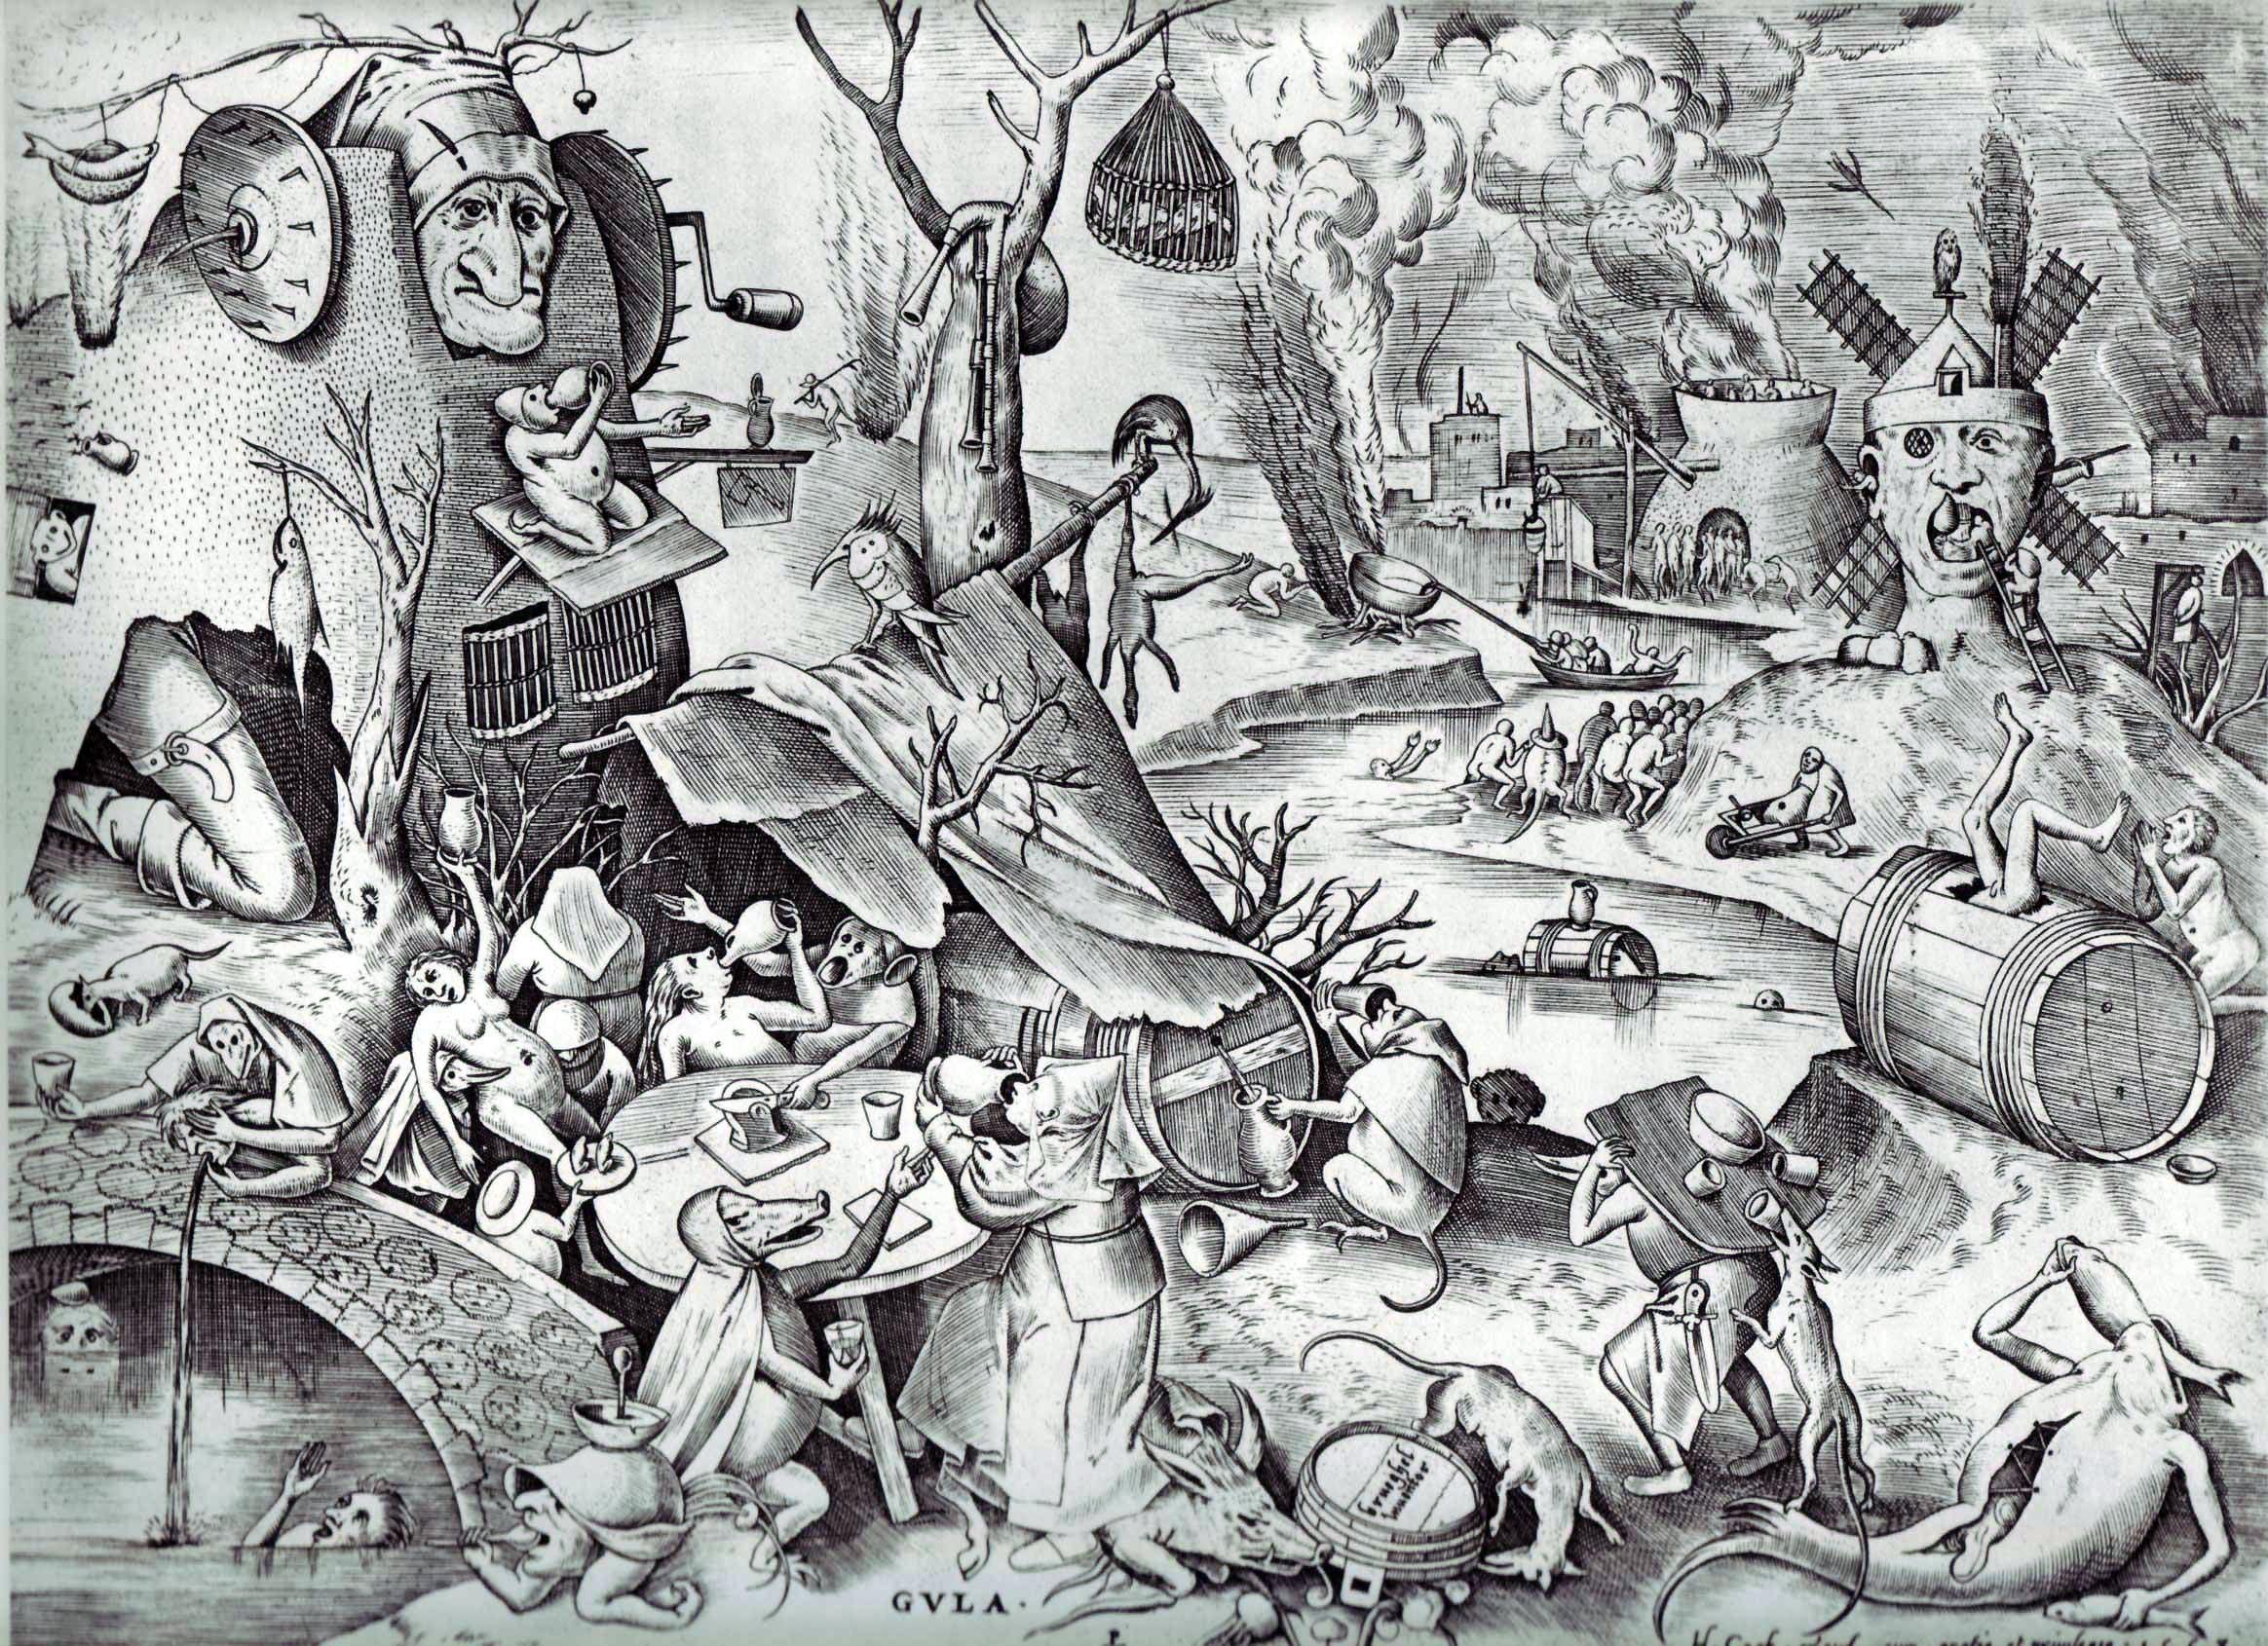 https://upload.wikimedia.org/wikipedia/commons/a/a1/Pieter_Bruegel_the_Elder-_The_Seven_Deadly_Sins_or_the_Seven_Vices_-_Gluttony.JPG